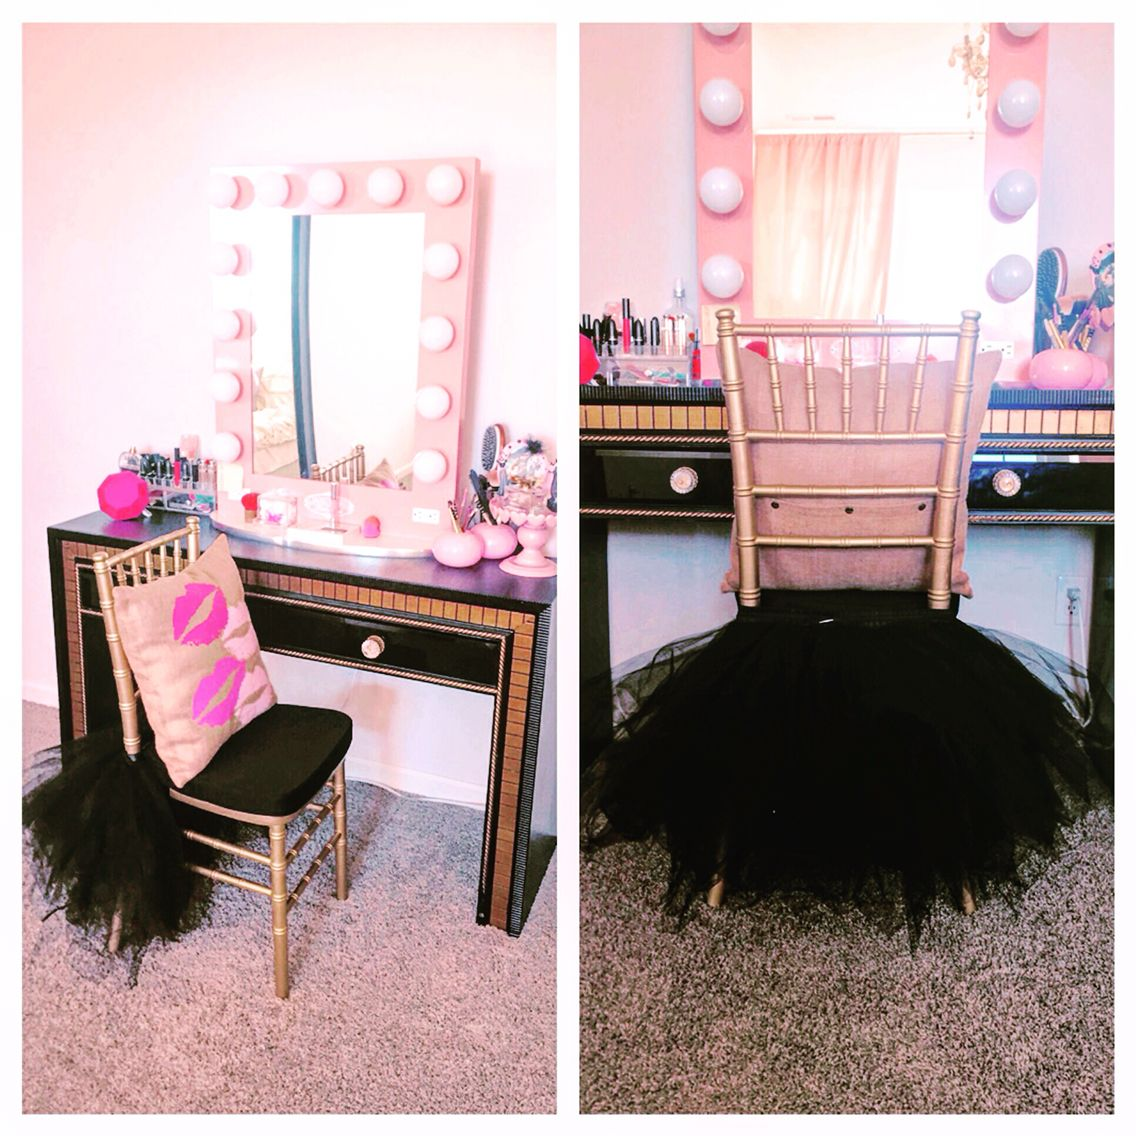 All Girly Vanity Pink Vanity Vanitygirlhollywood Broadway